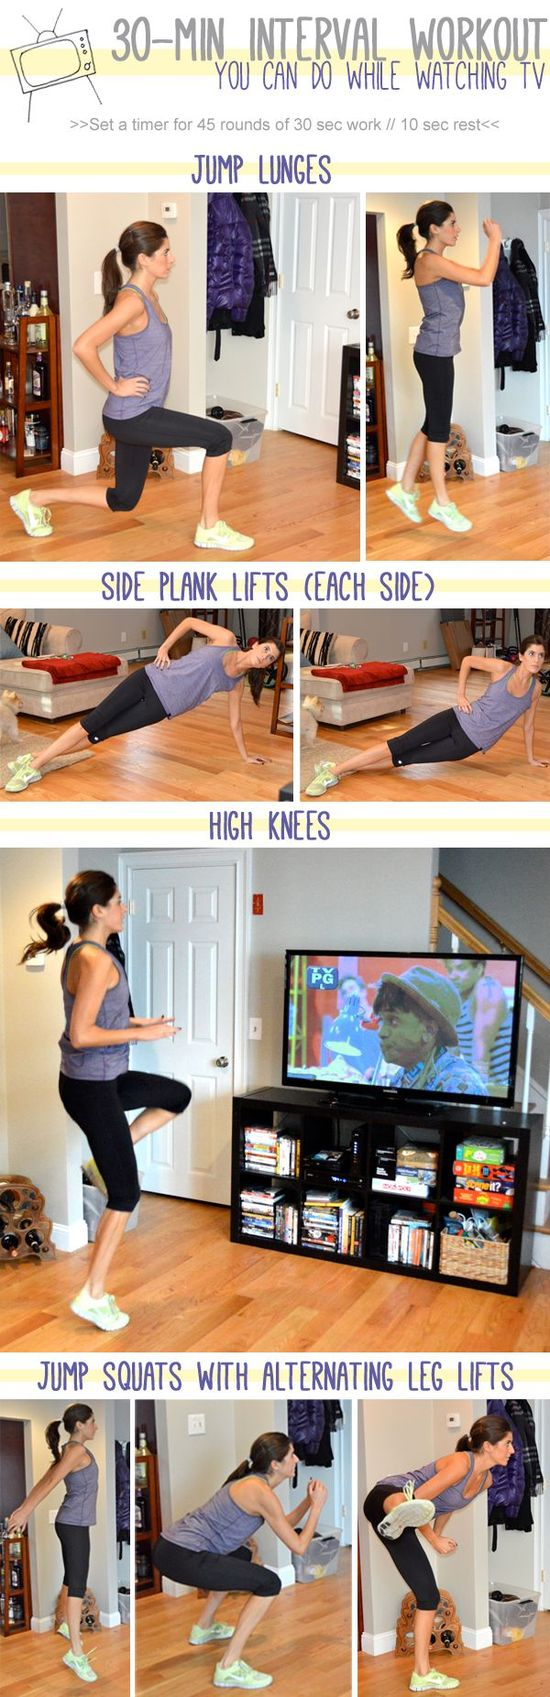 workout you can do while watching TV #fitness #workout #exercise #home #tip